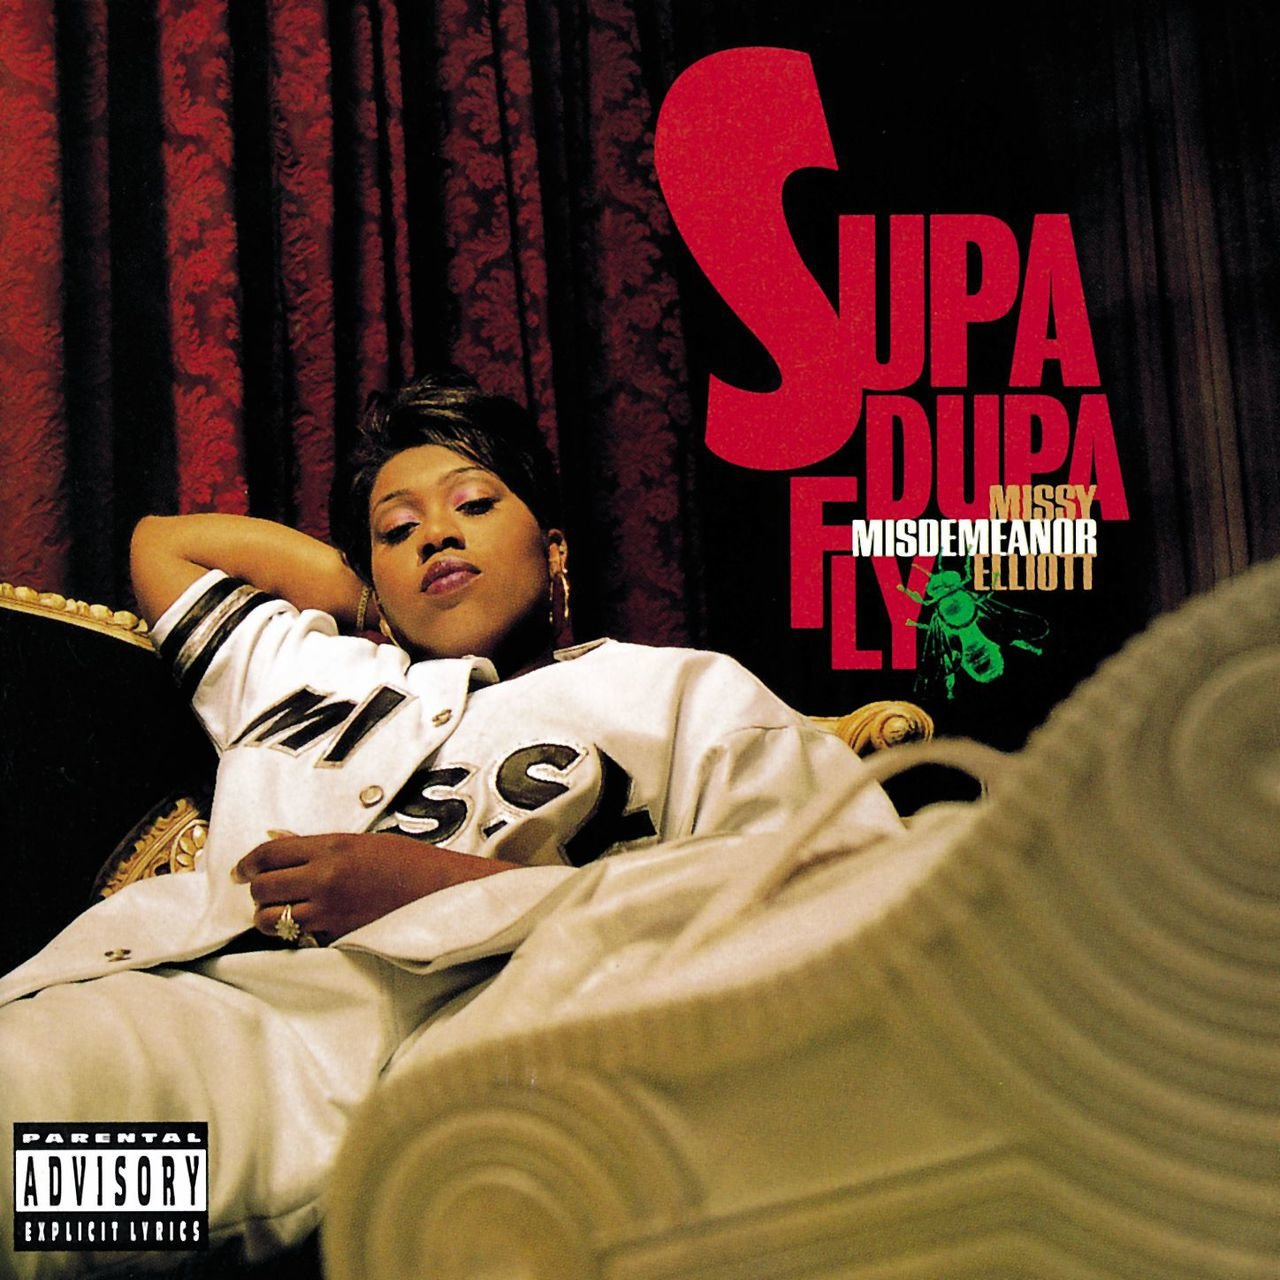 The Source |Today In Hip Hop History: Missy Elliott Releases Debut LP 'Supa Dupa Fly' 23 Years Ago